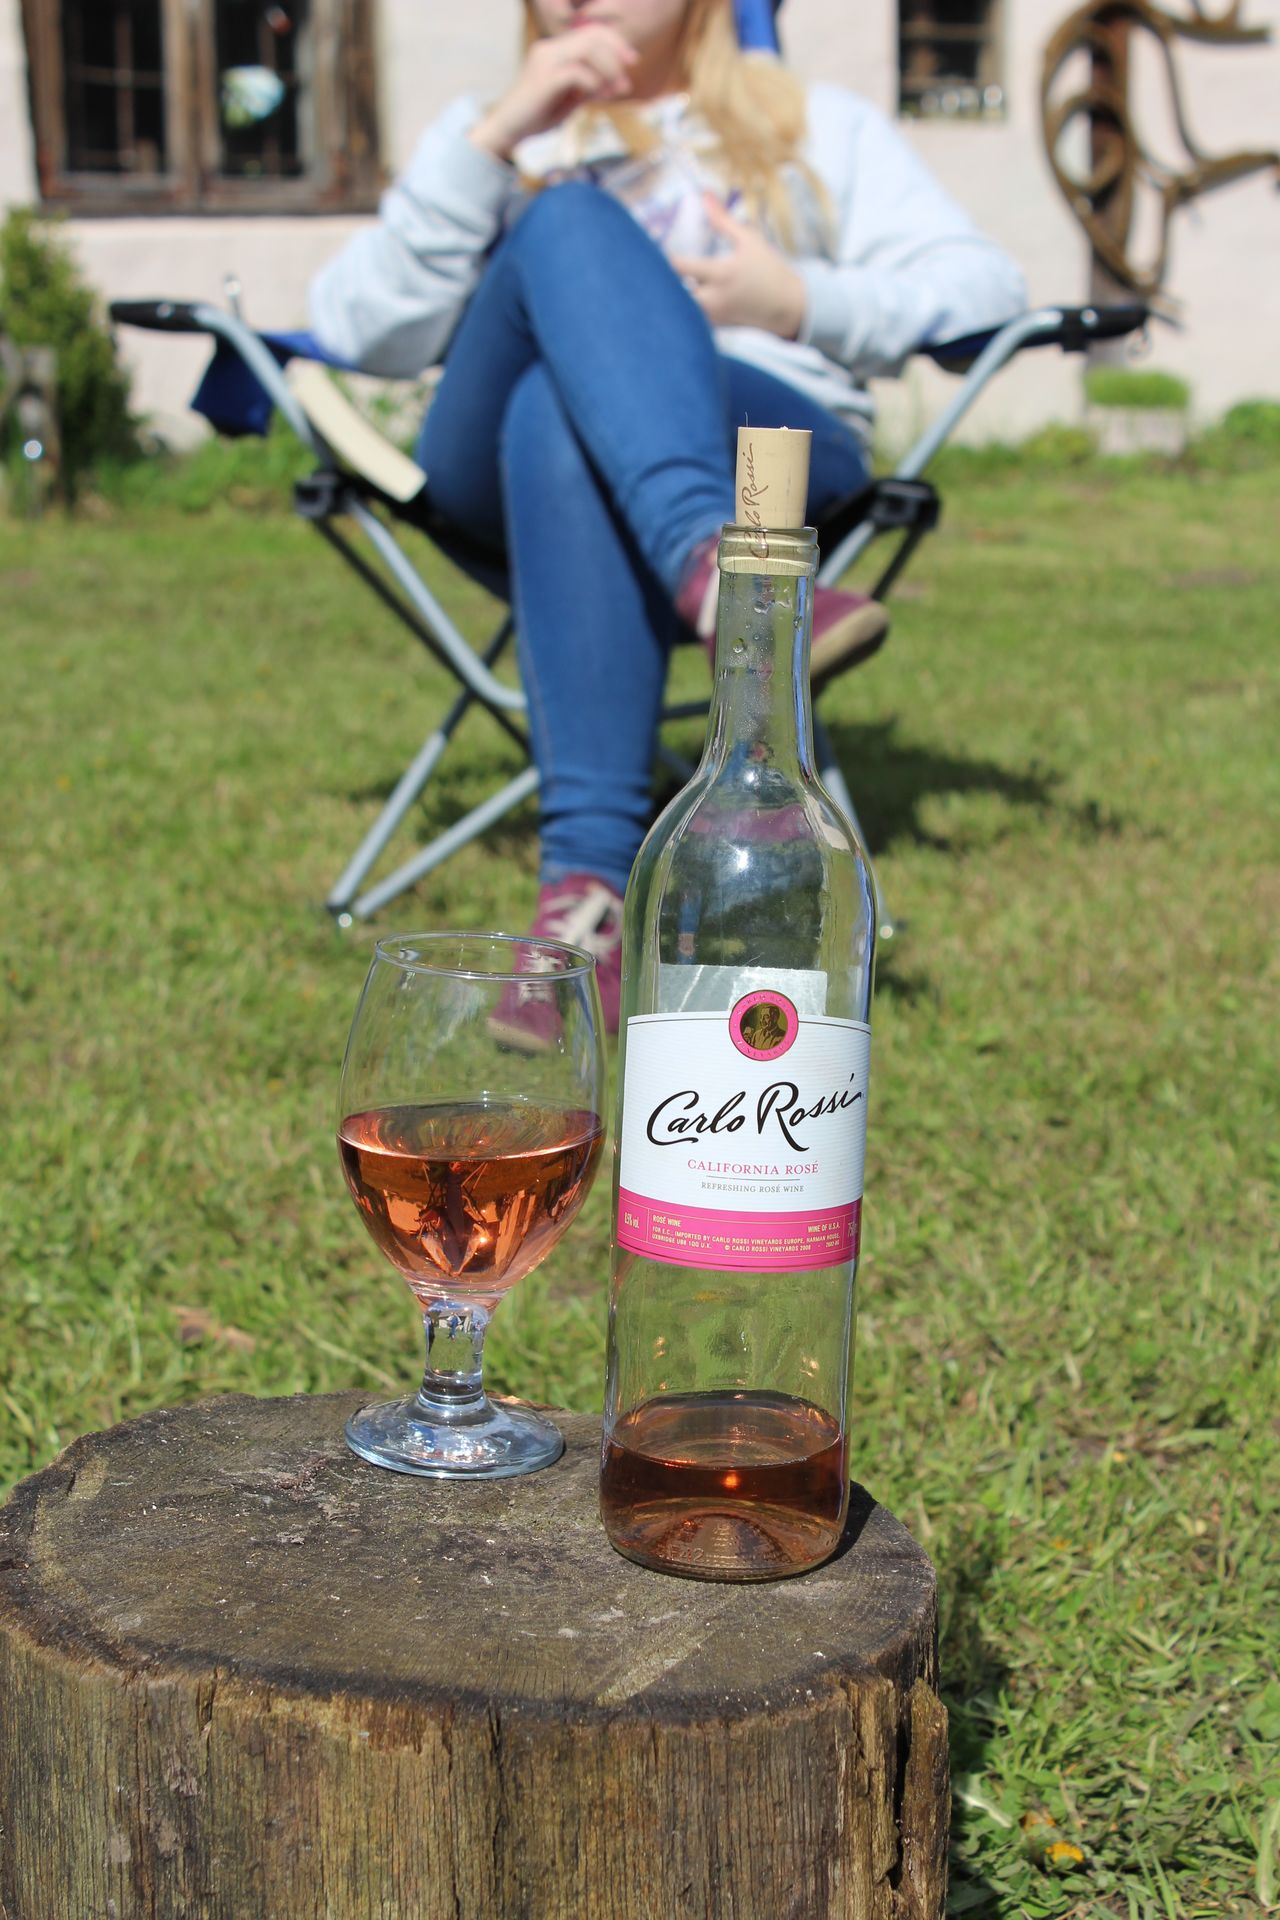 Bottle Carlo Rossi Close-up Day Focus On Foreground Grass Grass Holiday Nature Outdoors Pink Wine Relaxing Moments Relaxing Time Sweet Wine Wine Wine Glass Wine Moments